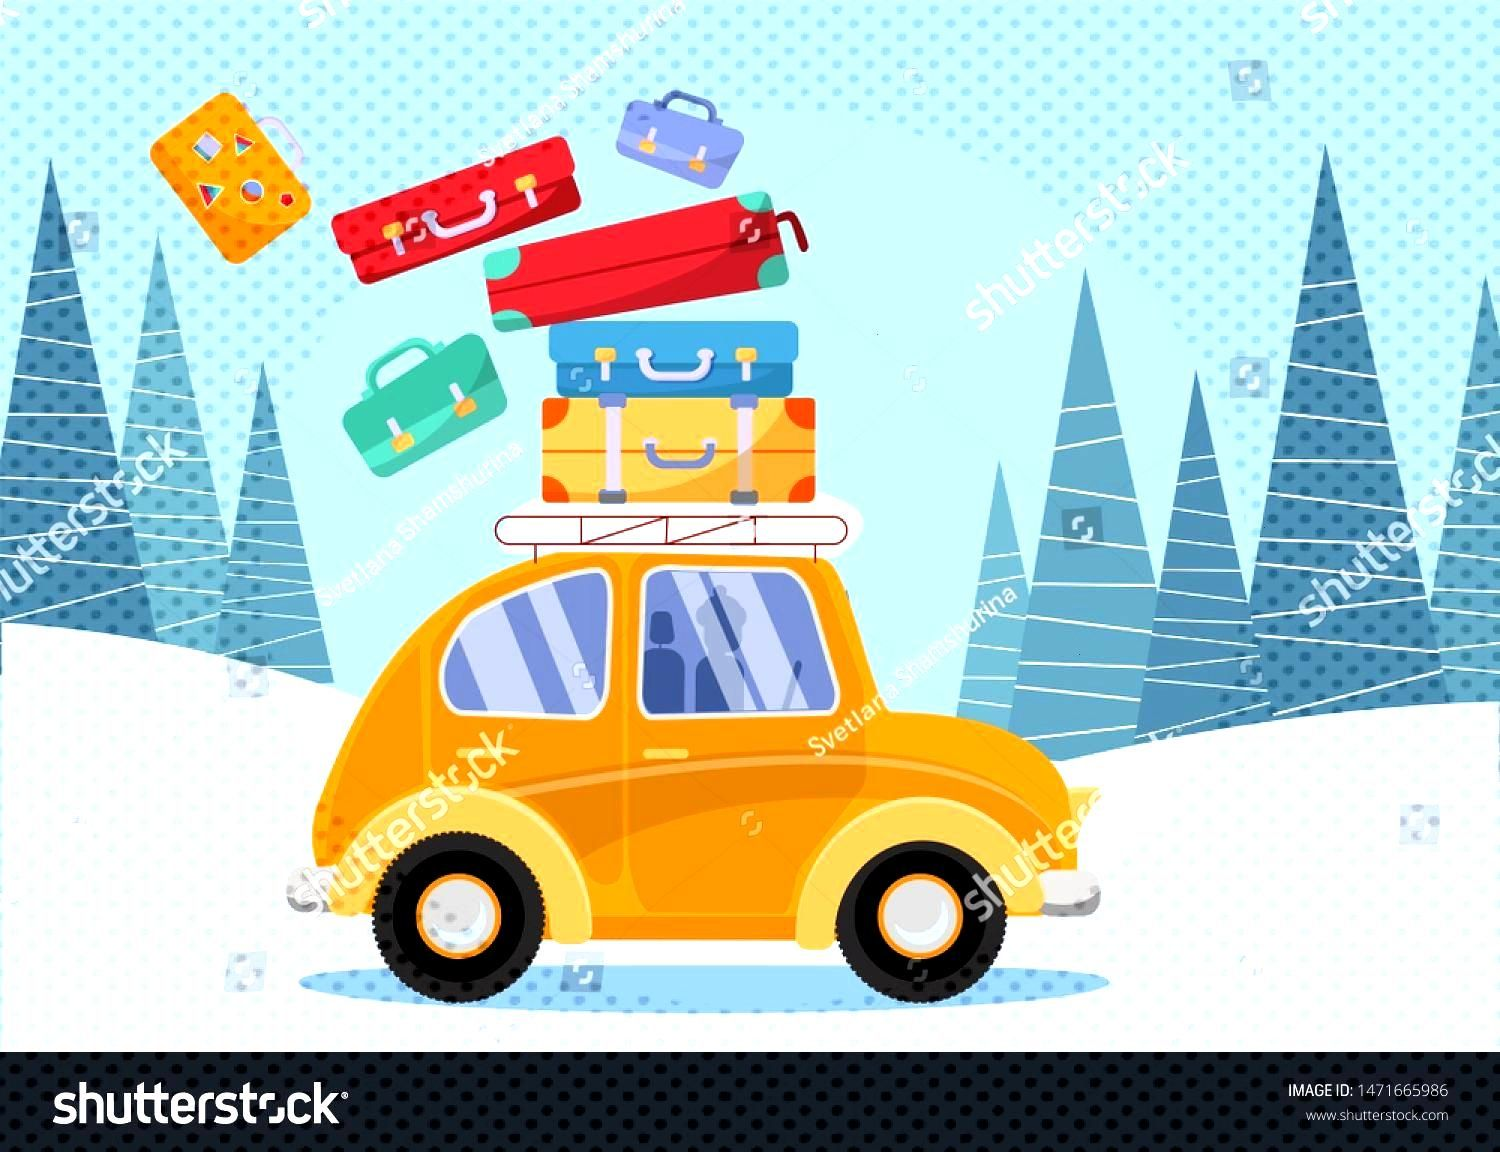 Travel concept. Yellow vintage car with travel suitcases on roof. Winter tourism...#car